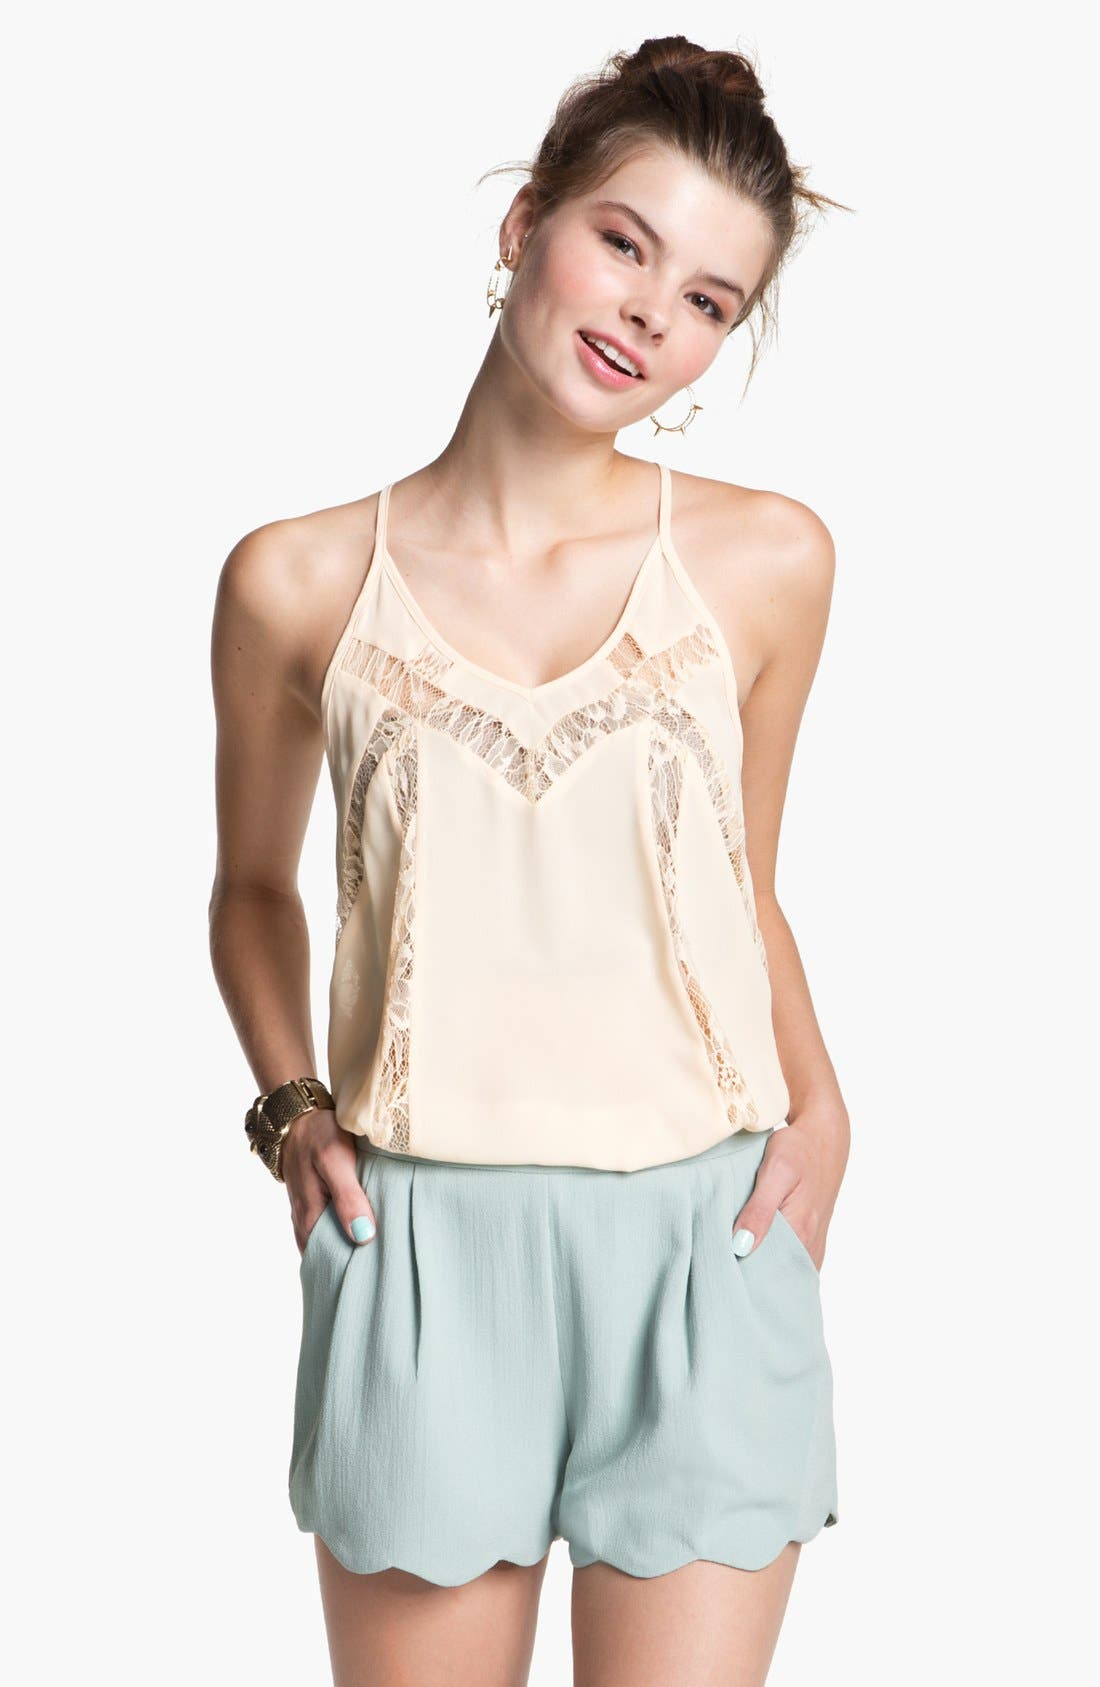 Alternate Image 1 Selected - Lush Lace Inset Camisole (Juniors)